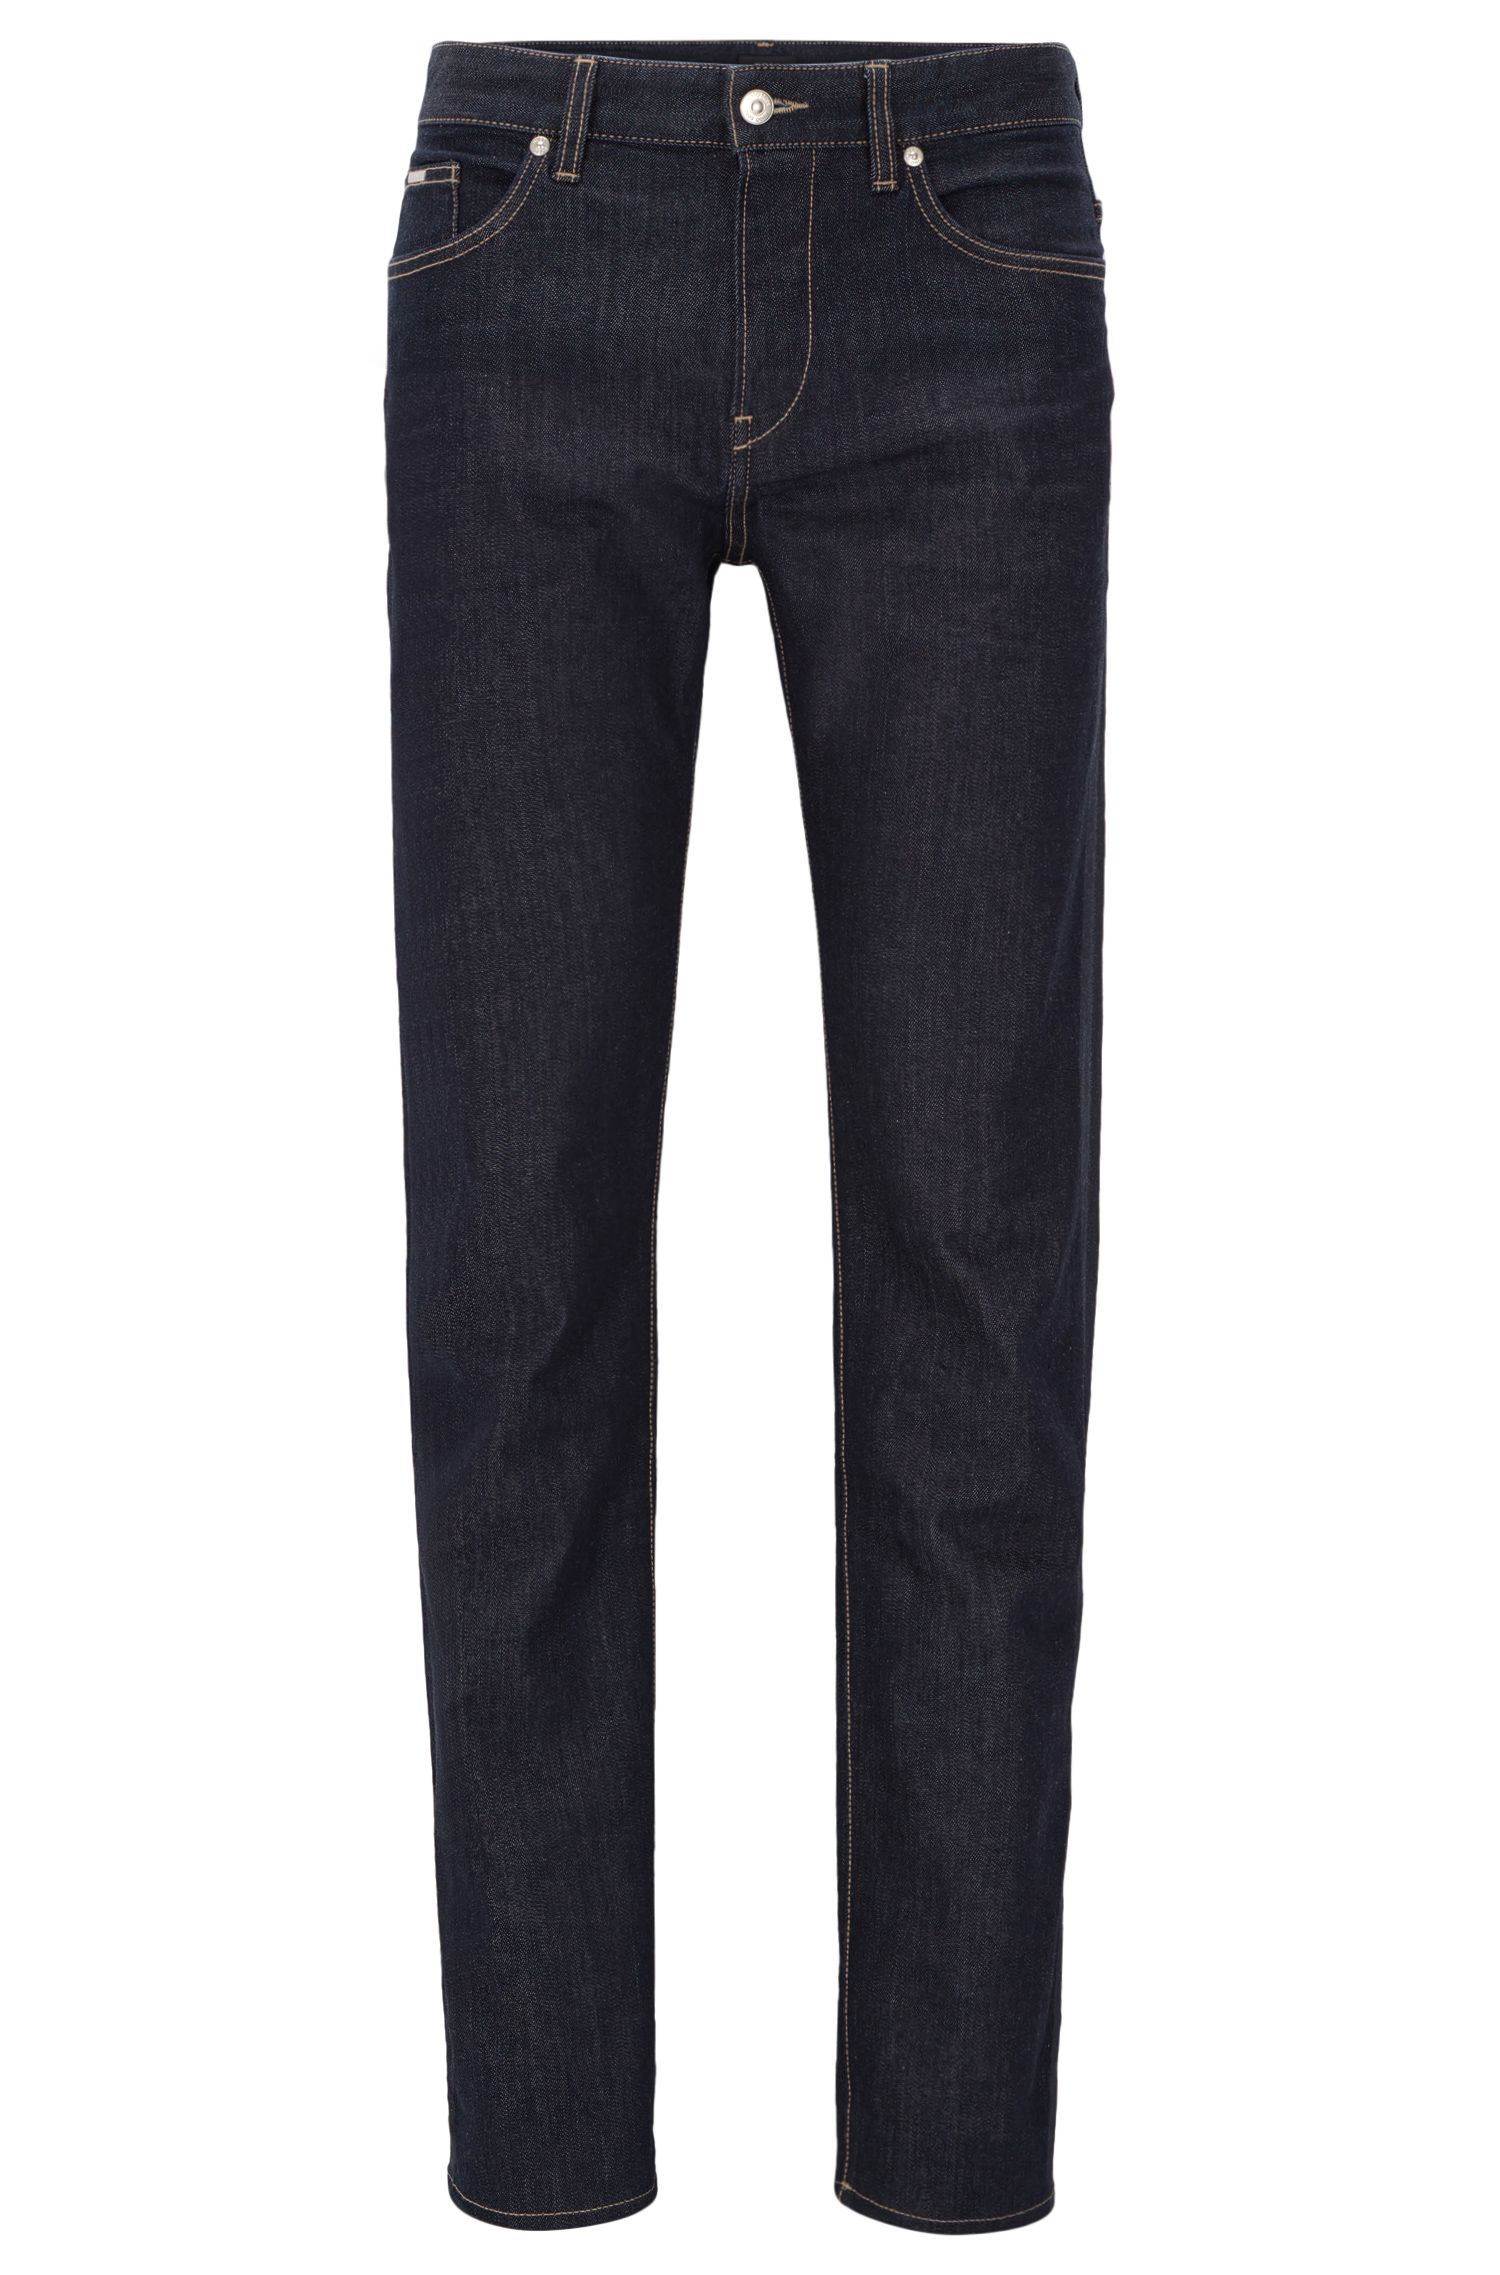 Jeans Slim Fit en denim stretch